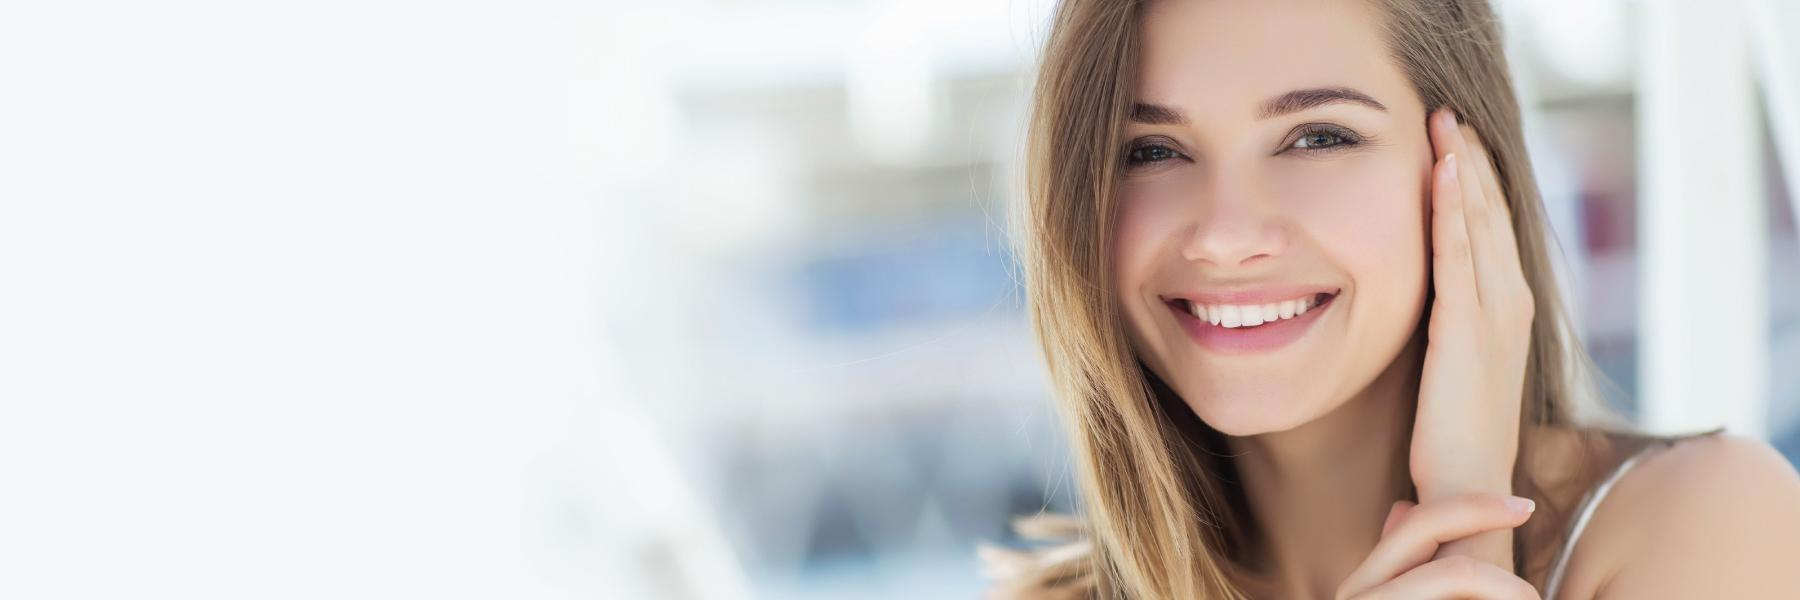 girl smiling after cosmetic dentistry appointment